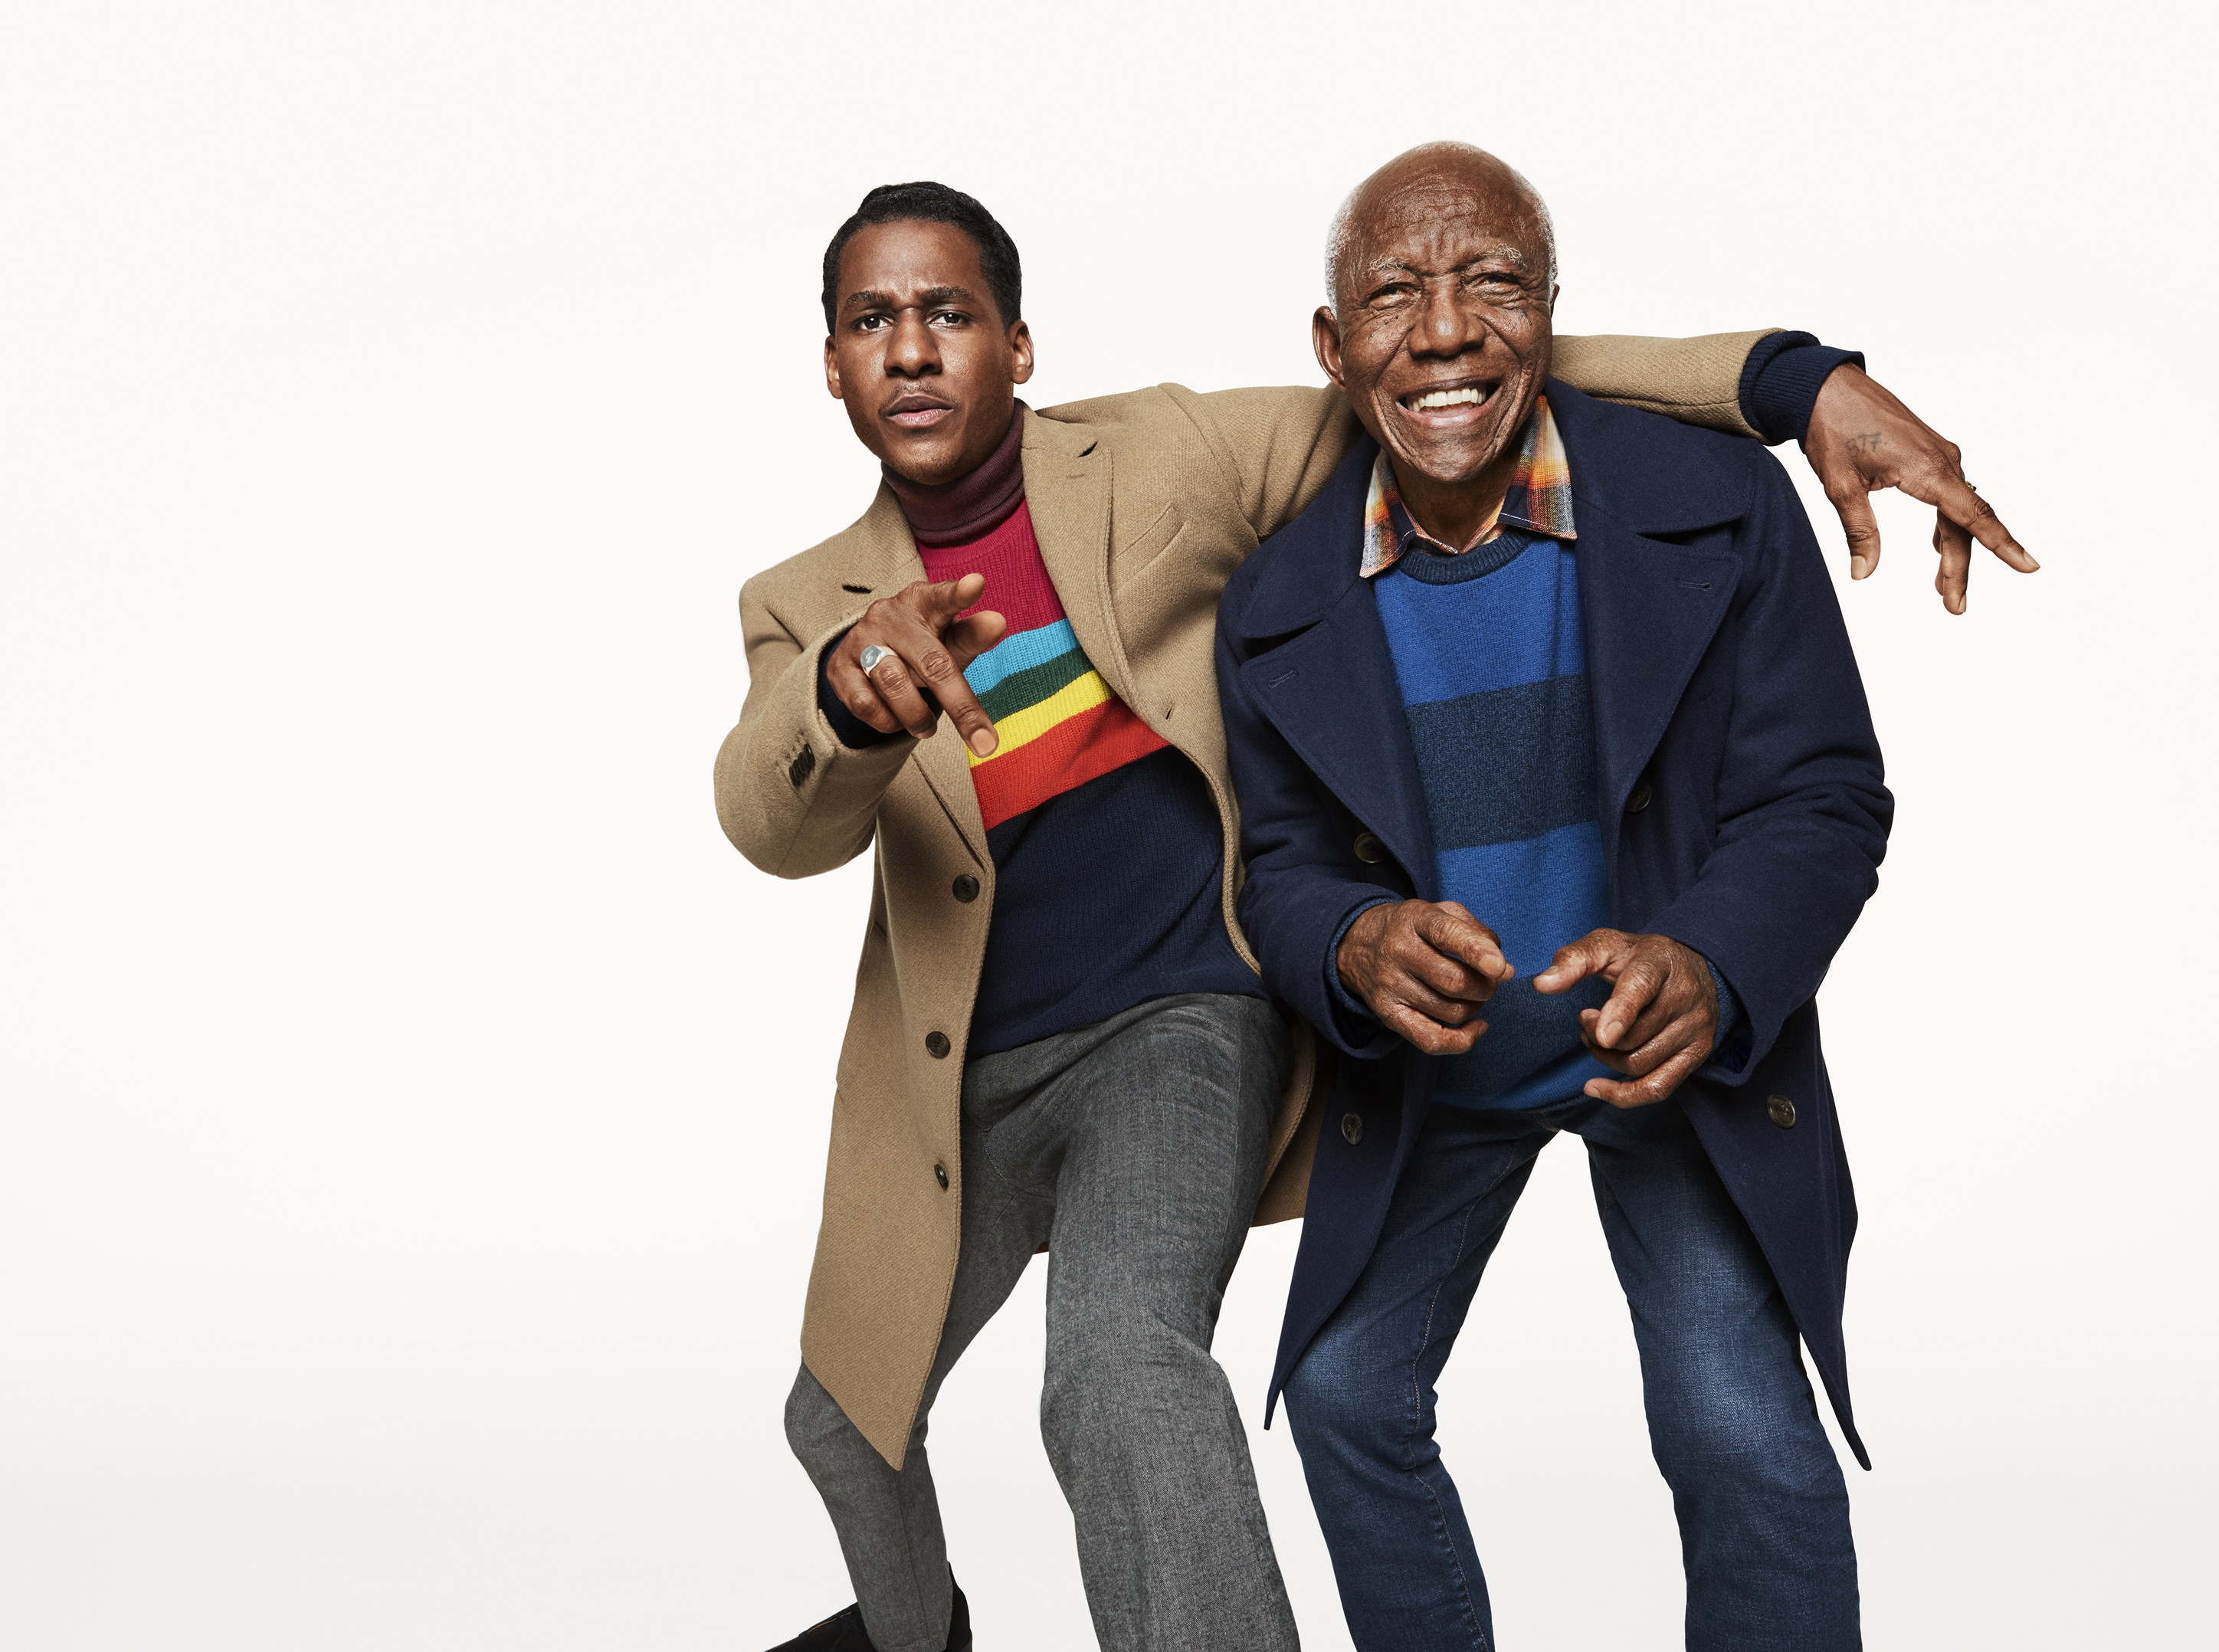 Gap Holiday 2018 Ad Campaign by Yard Featuring Leon Bridges